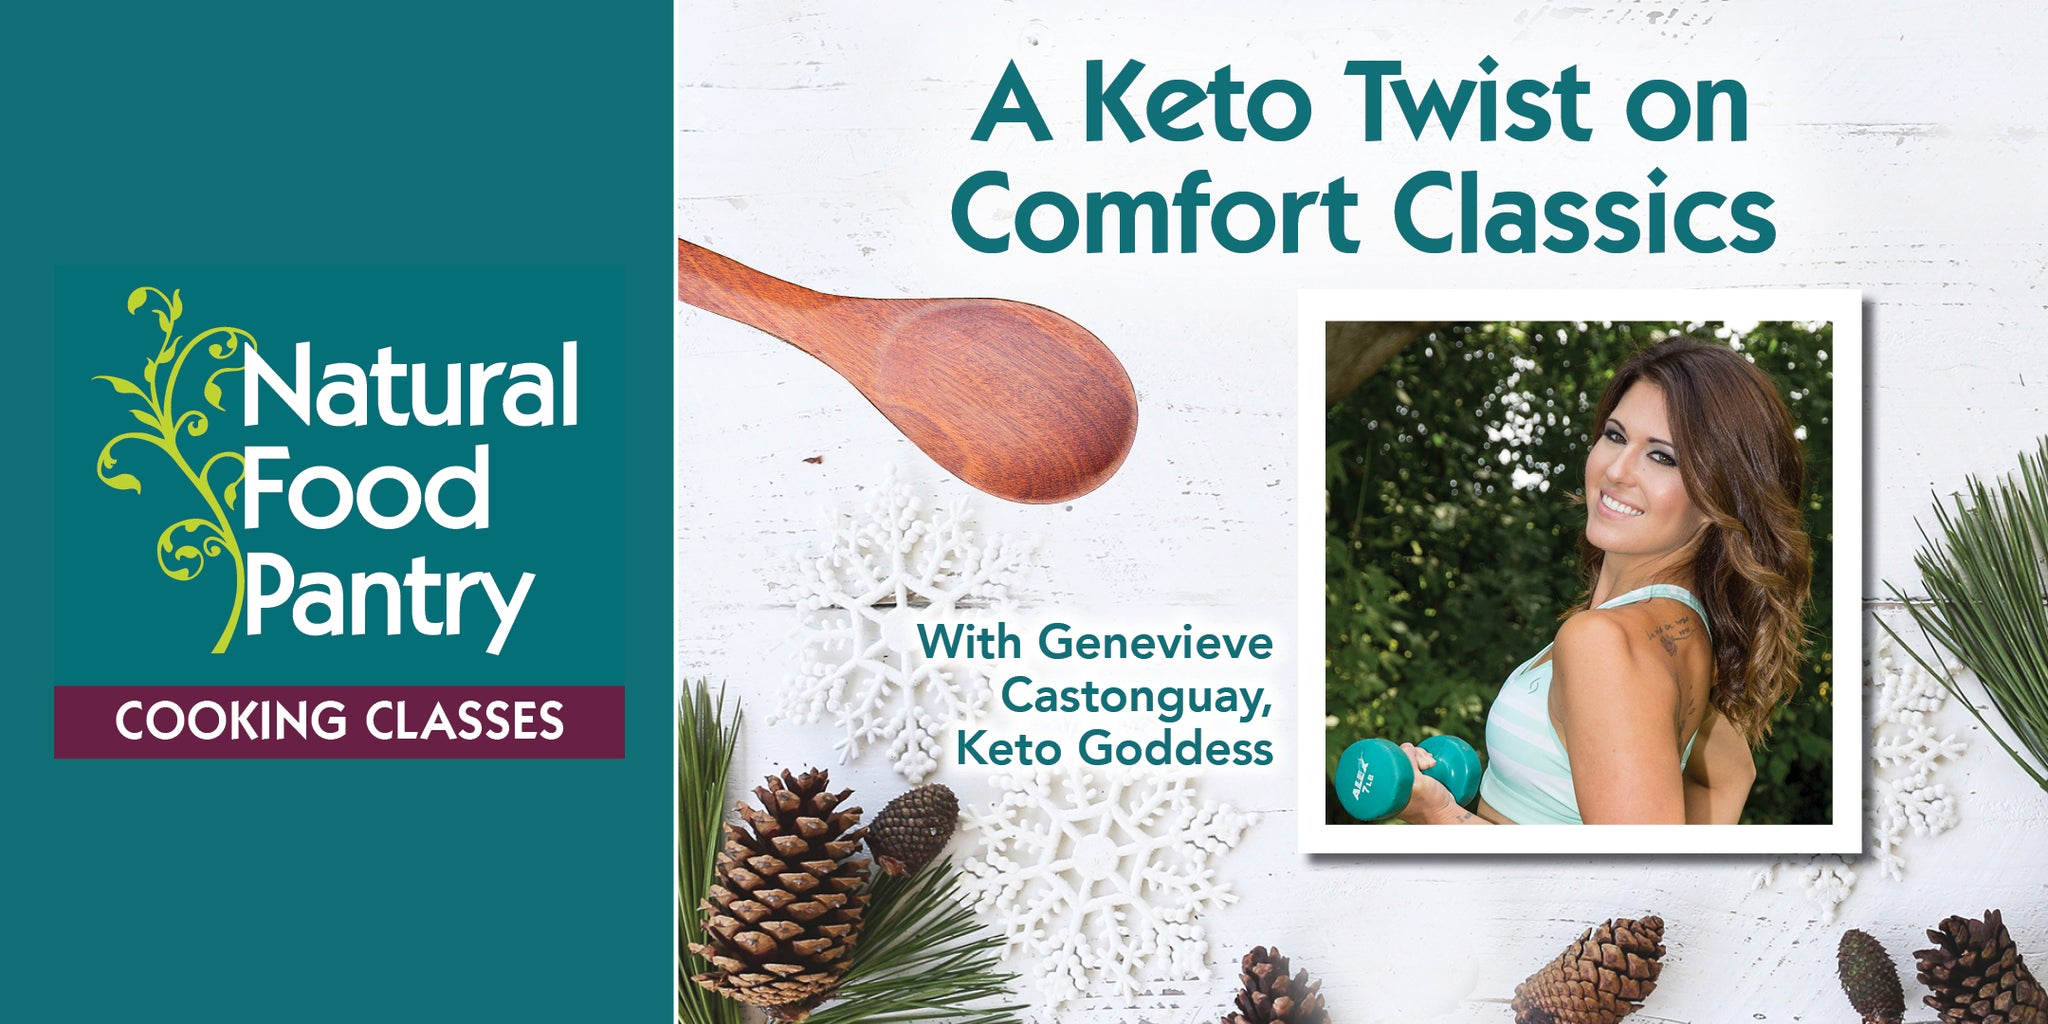 Jan 12: Cooking Class: A Keto Twist on Comfort Classics